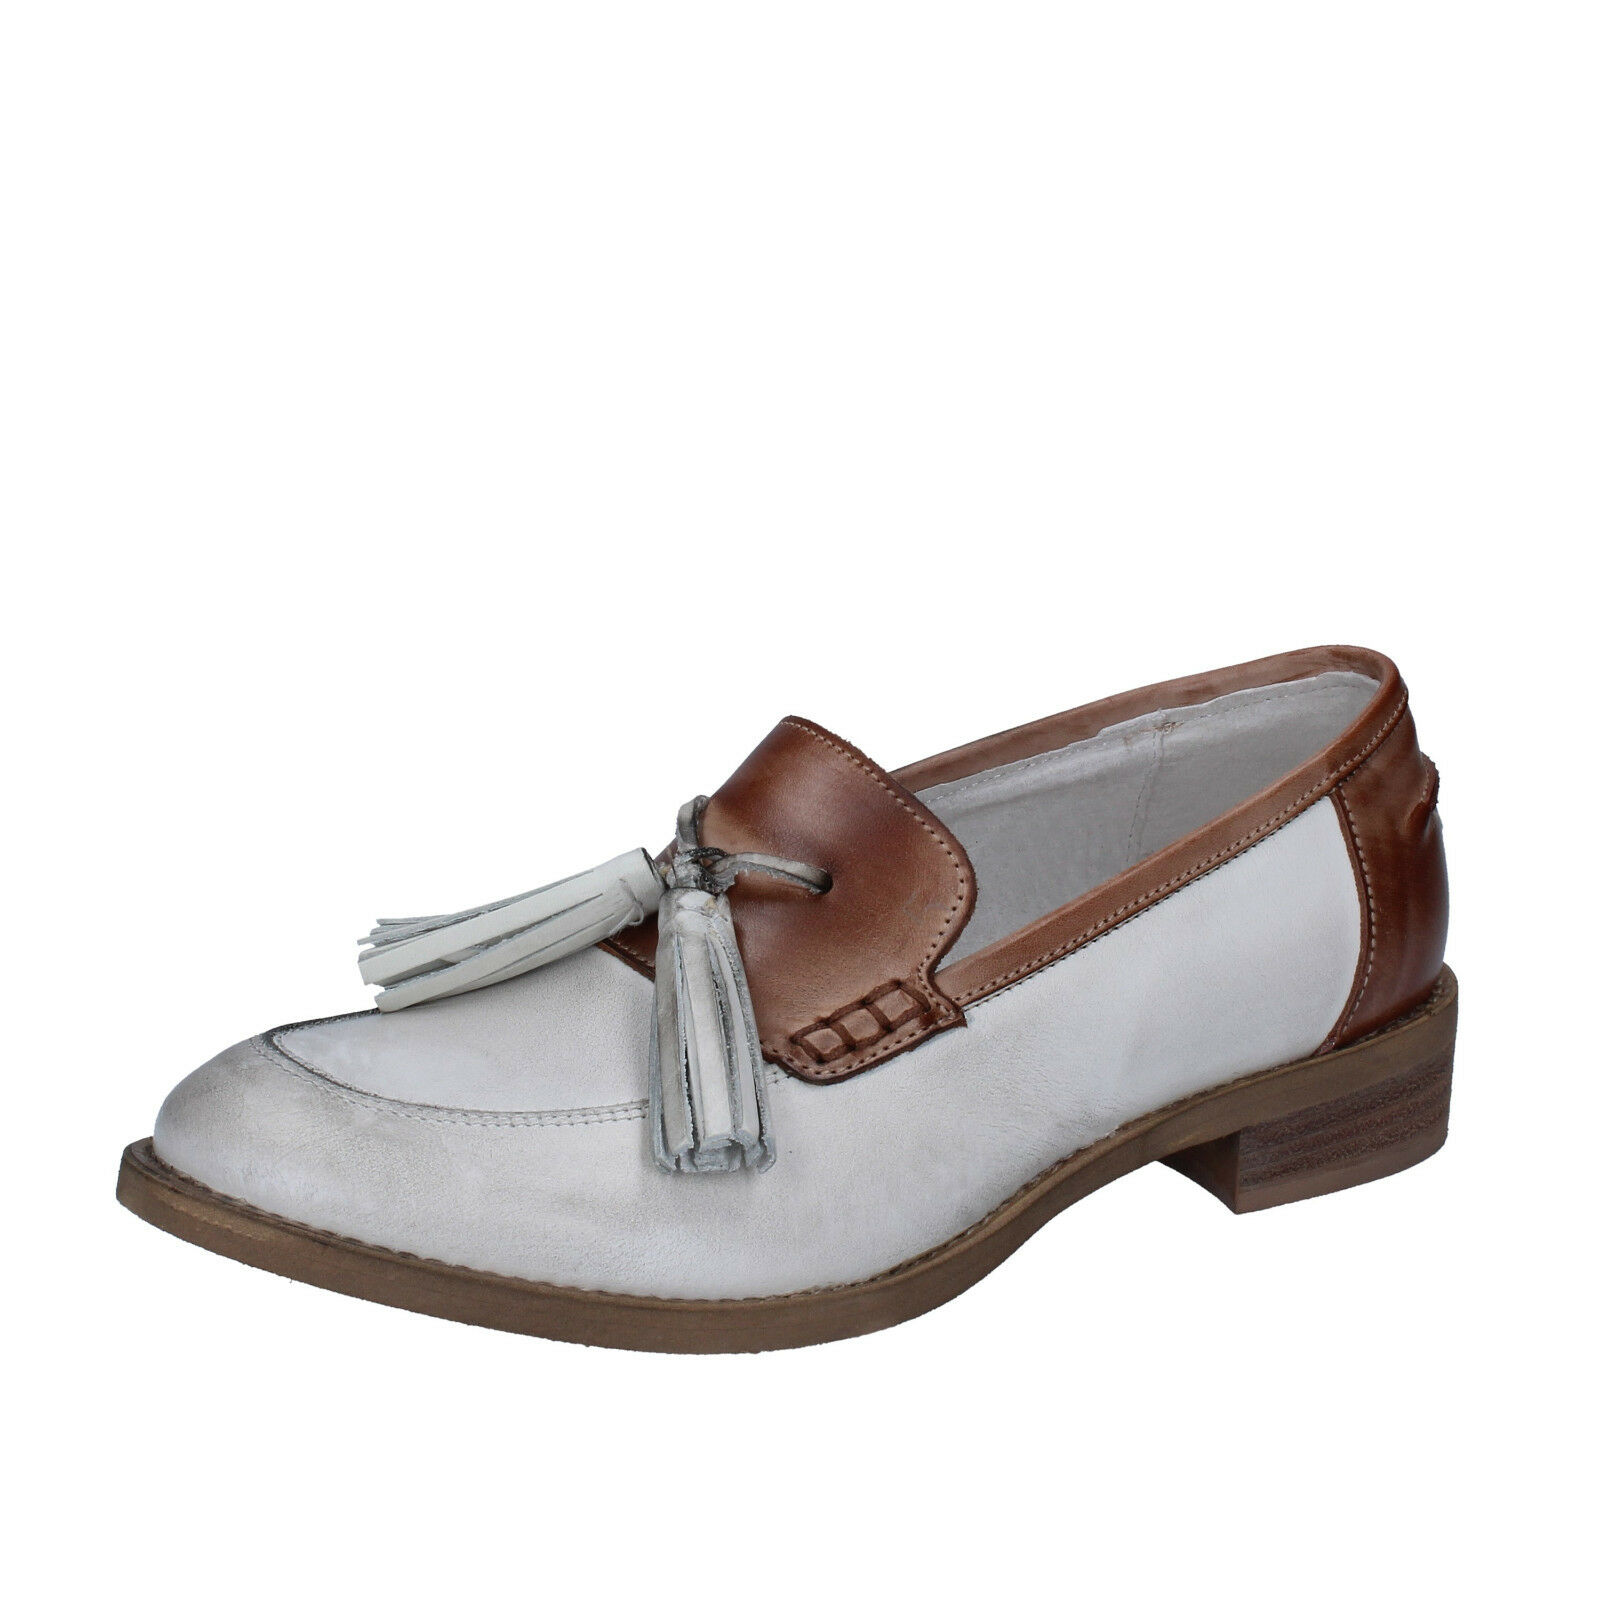 Scarpe donna CROWN pelle 36 mocassini marrone bianco pelle CROWN BZ935-C db9dcc